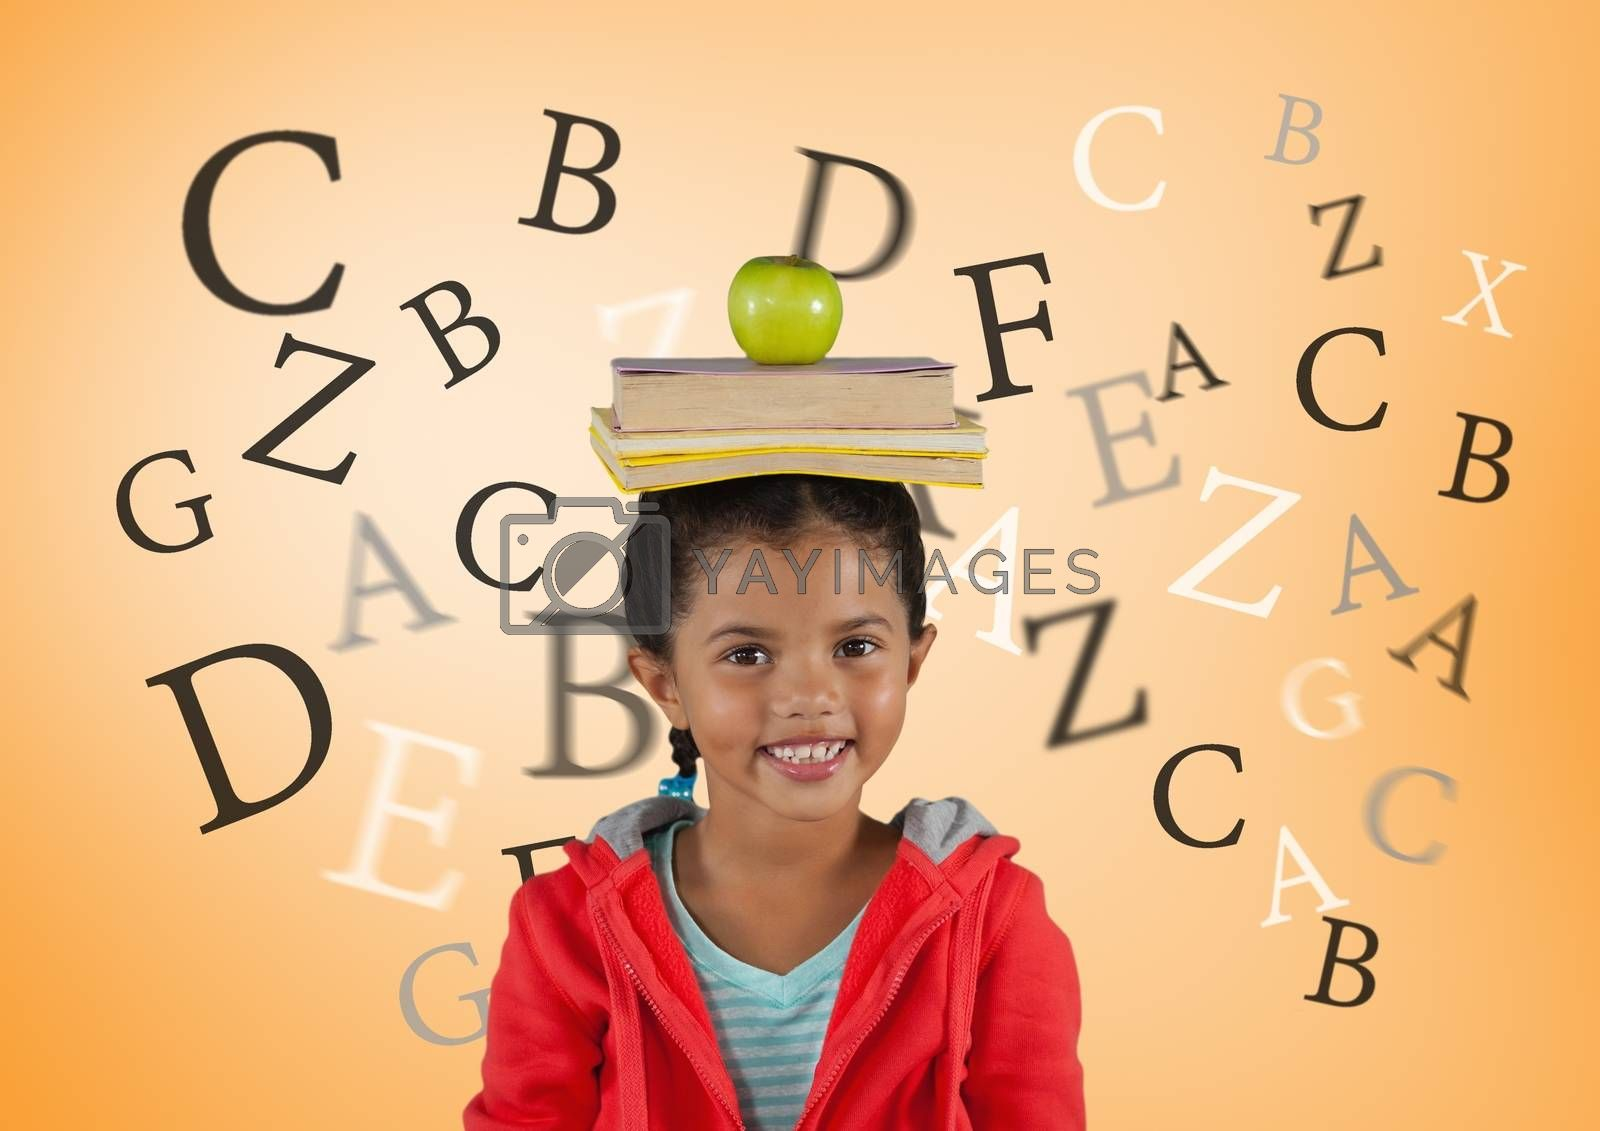 Many letters around Girl with books and apple on head in front of orange background by Wavebreakmedia